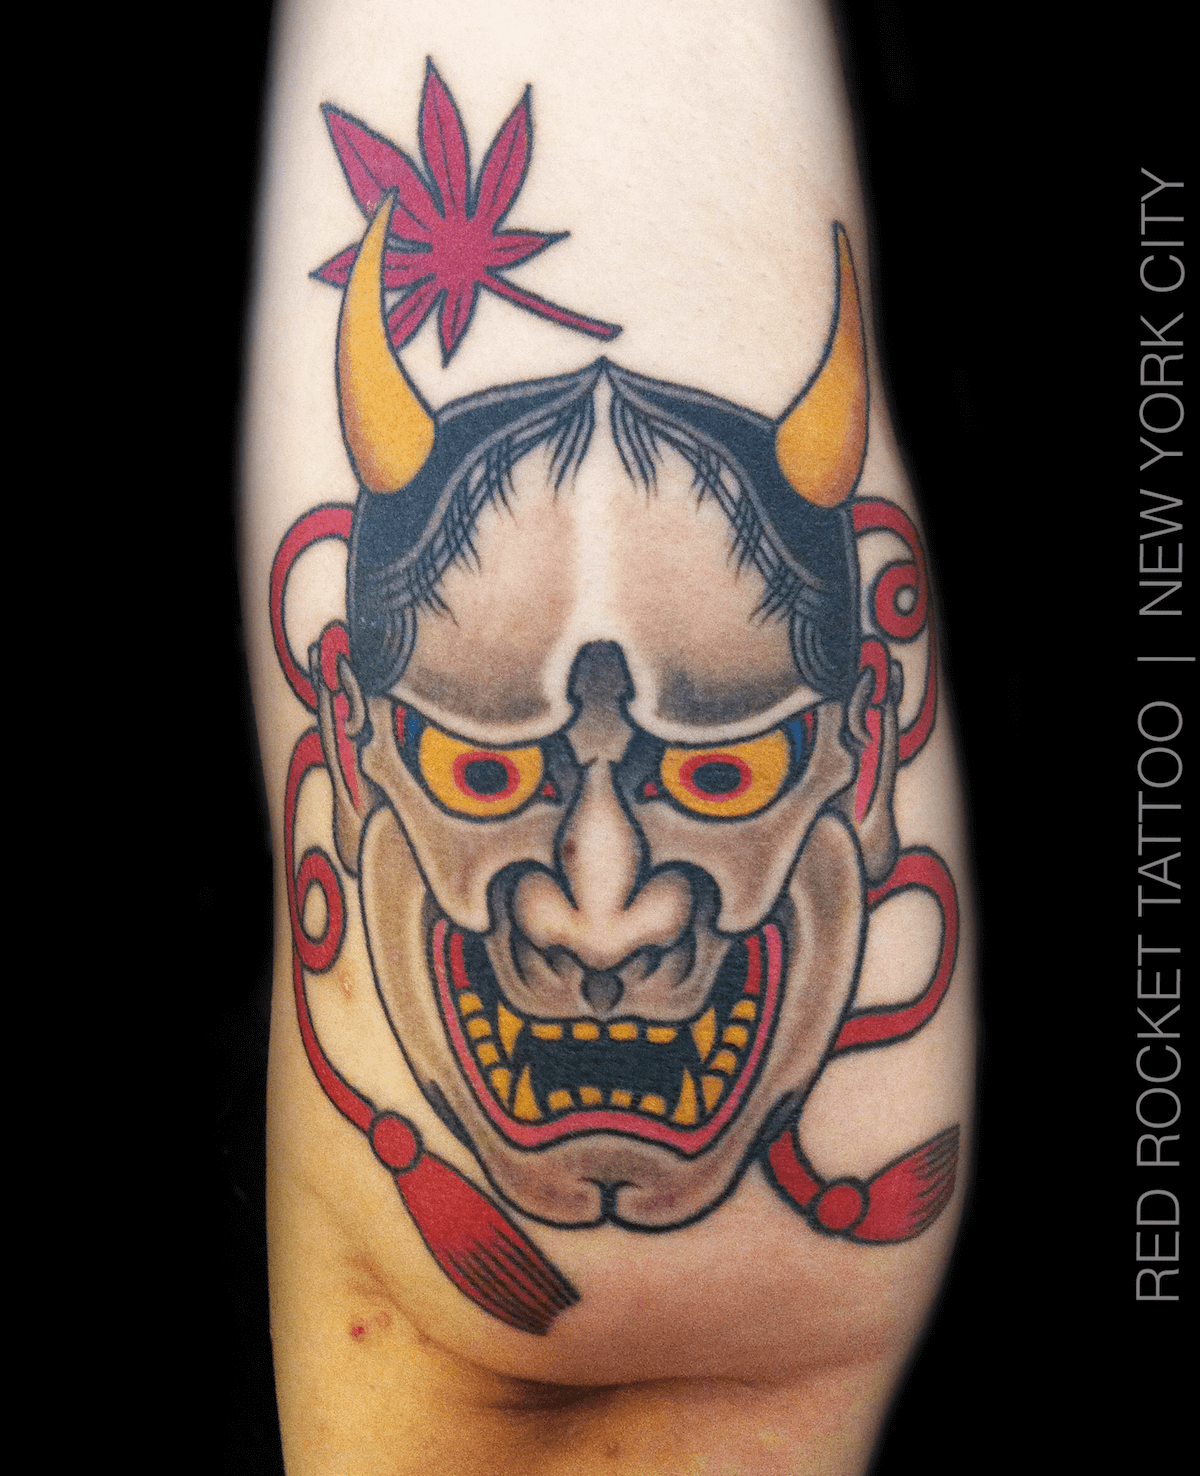 Japanese Hannya Mask Tattoo by Dave Ball